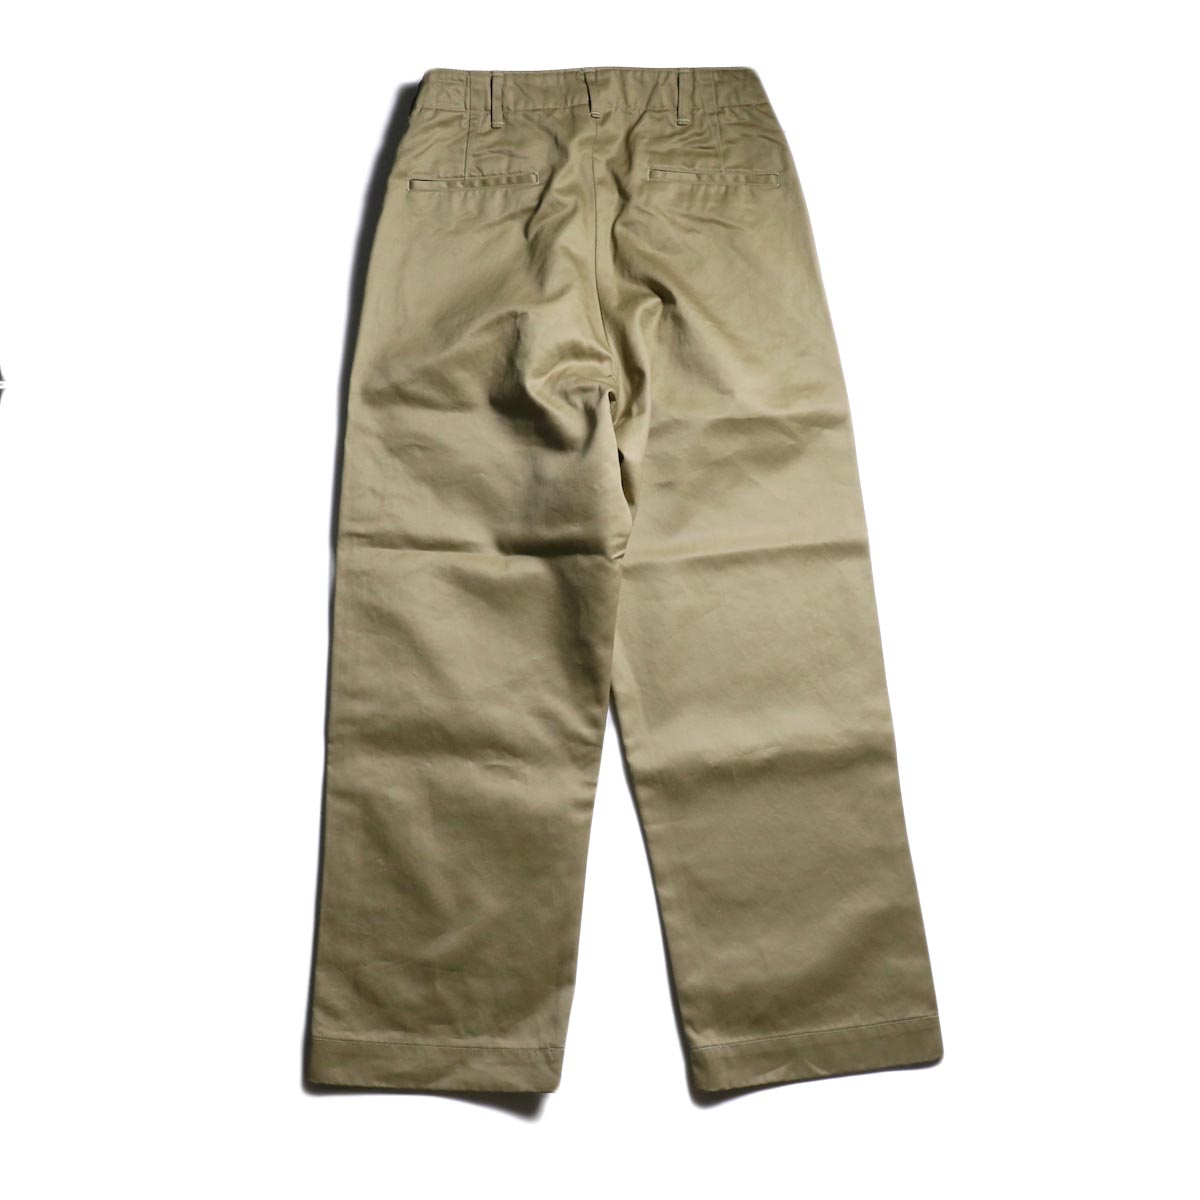 orSlow / VINTAGE FIT ARMY TROUSERS (Khaki)背面